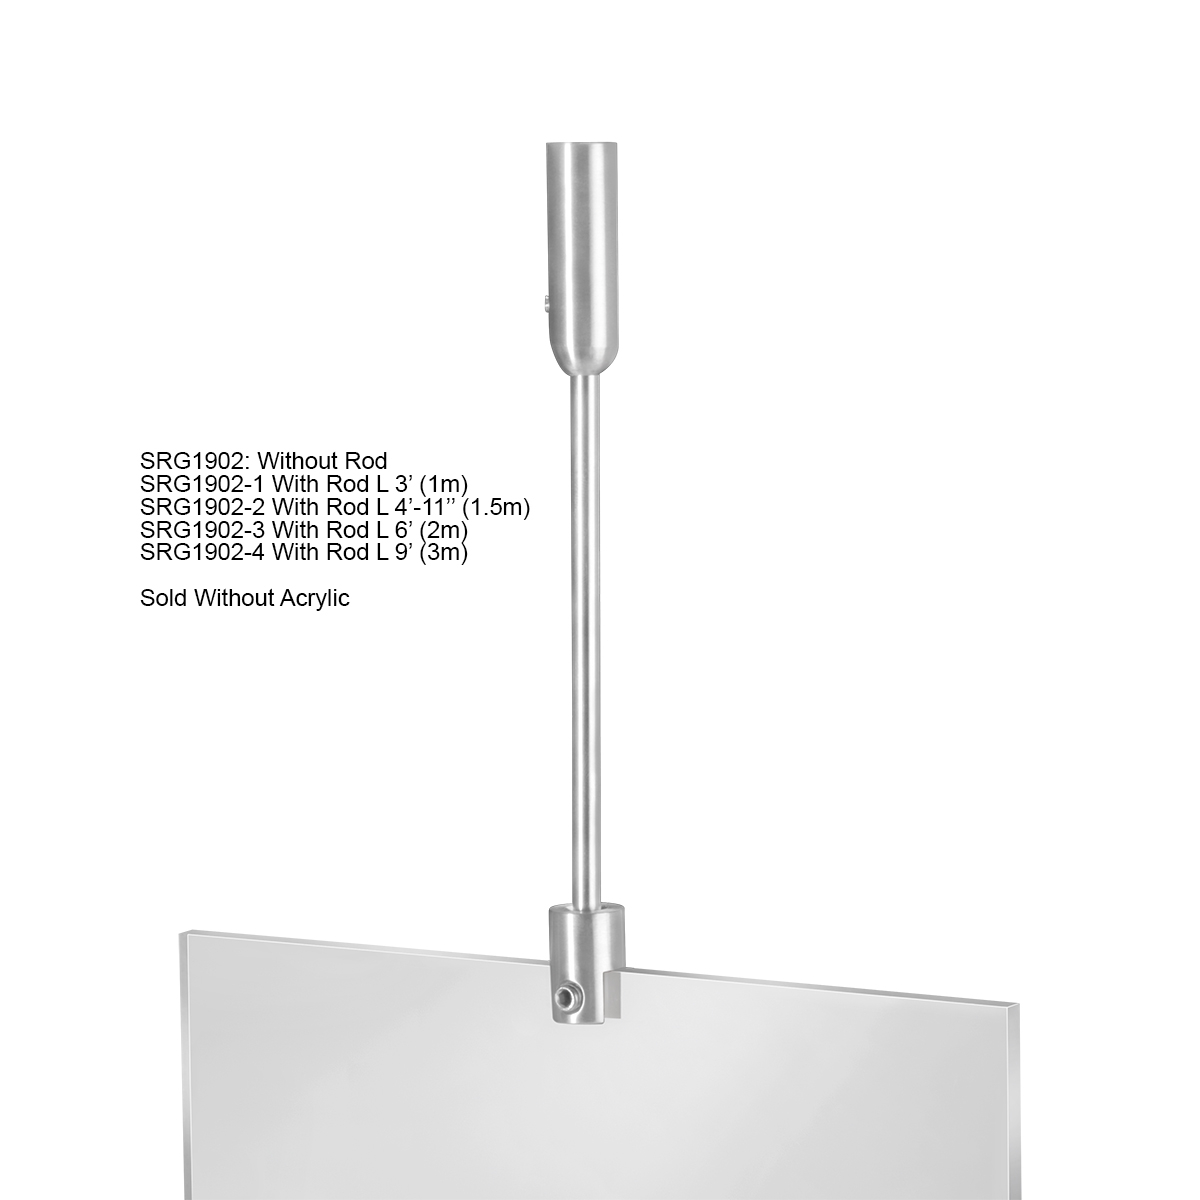 Ceiling Suspended Rod Kit - 9' - Stainless Steel